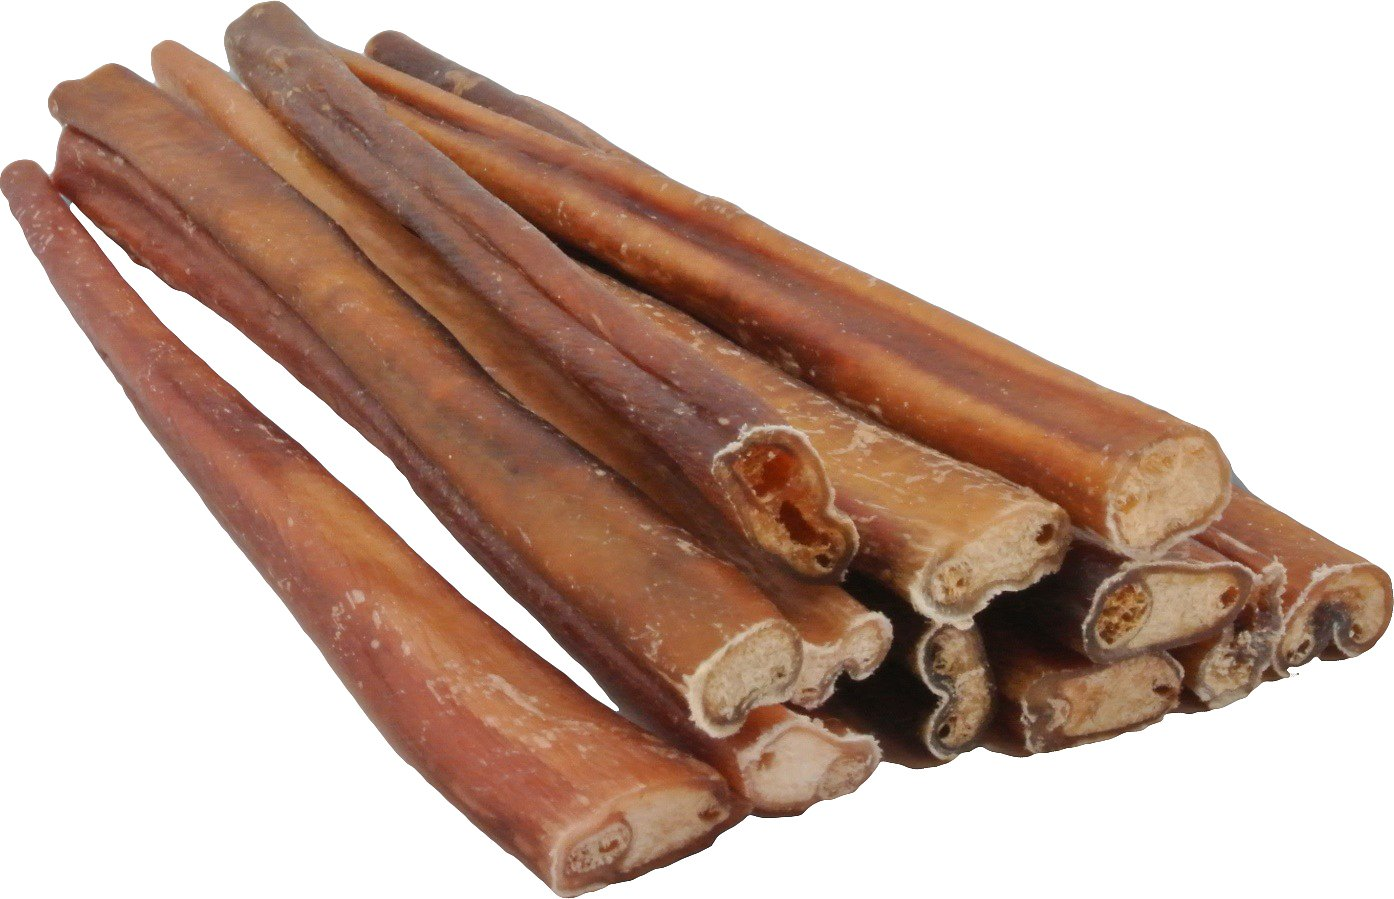 bully treats sticks for dogs red barn bully stick dog treat 12 inch gourmet bully stick canes. Black Bedroom Furniture Sets. Home Design Ideas